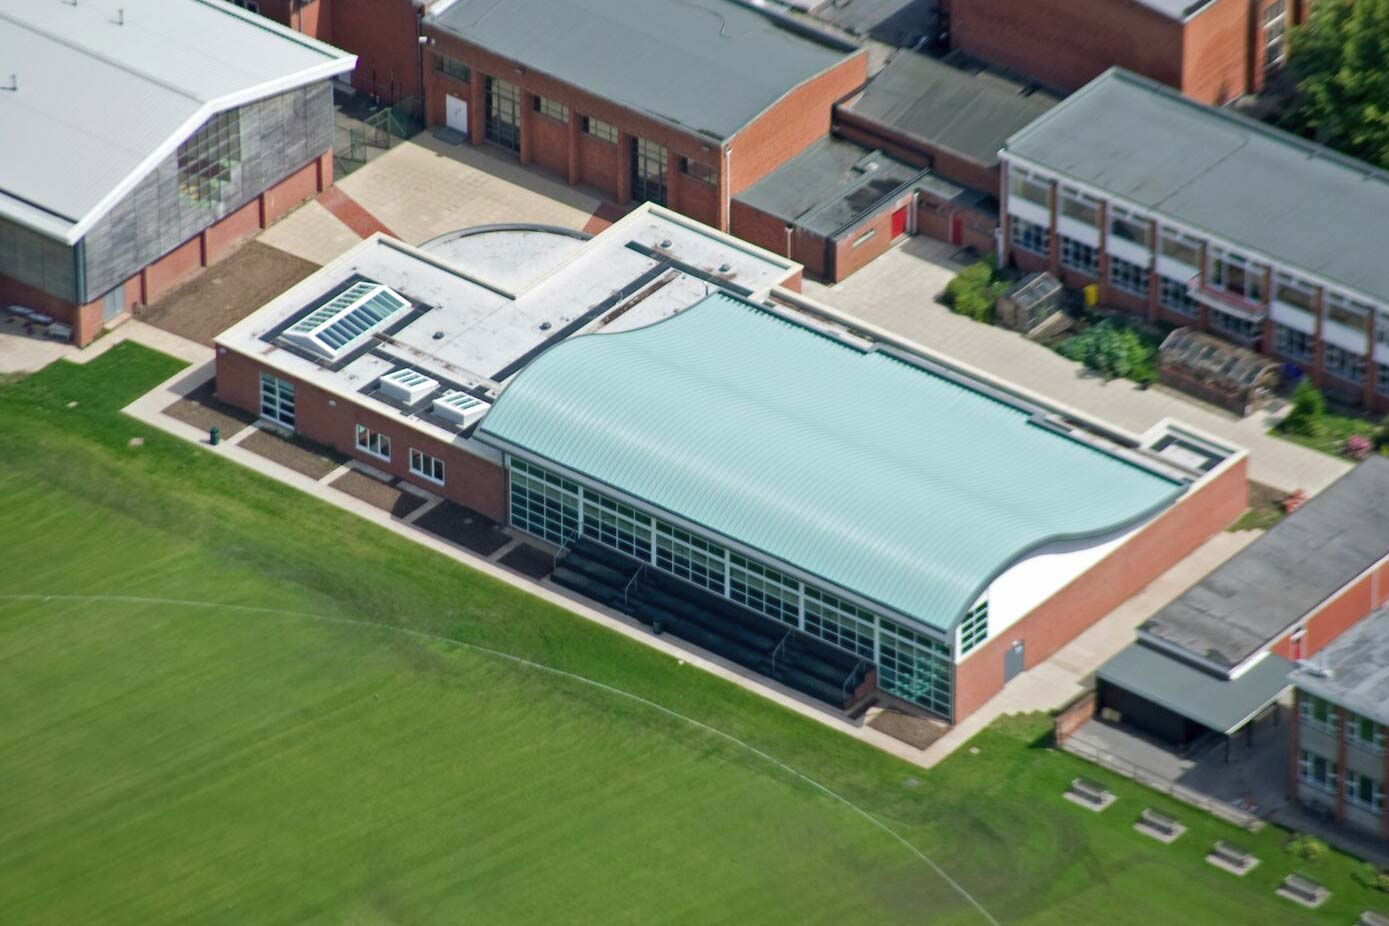 School roofing project